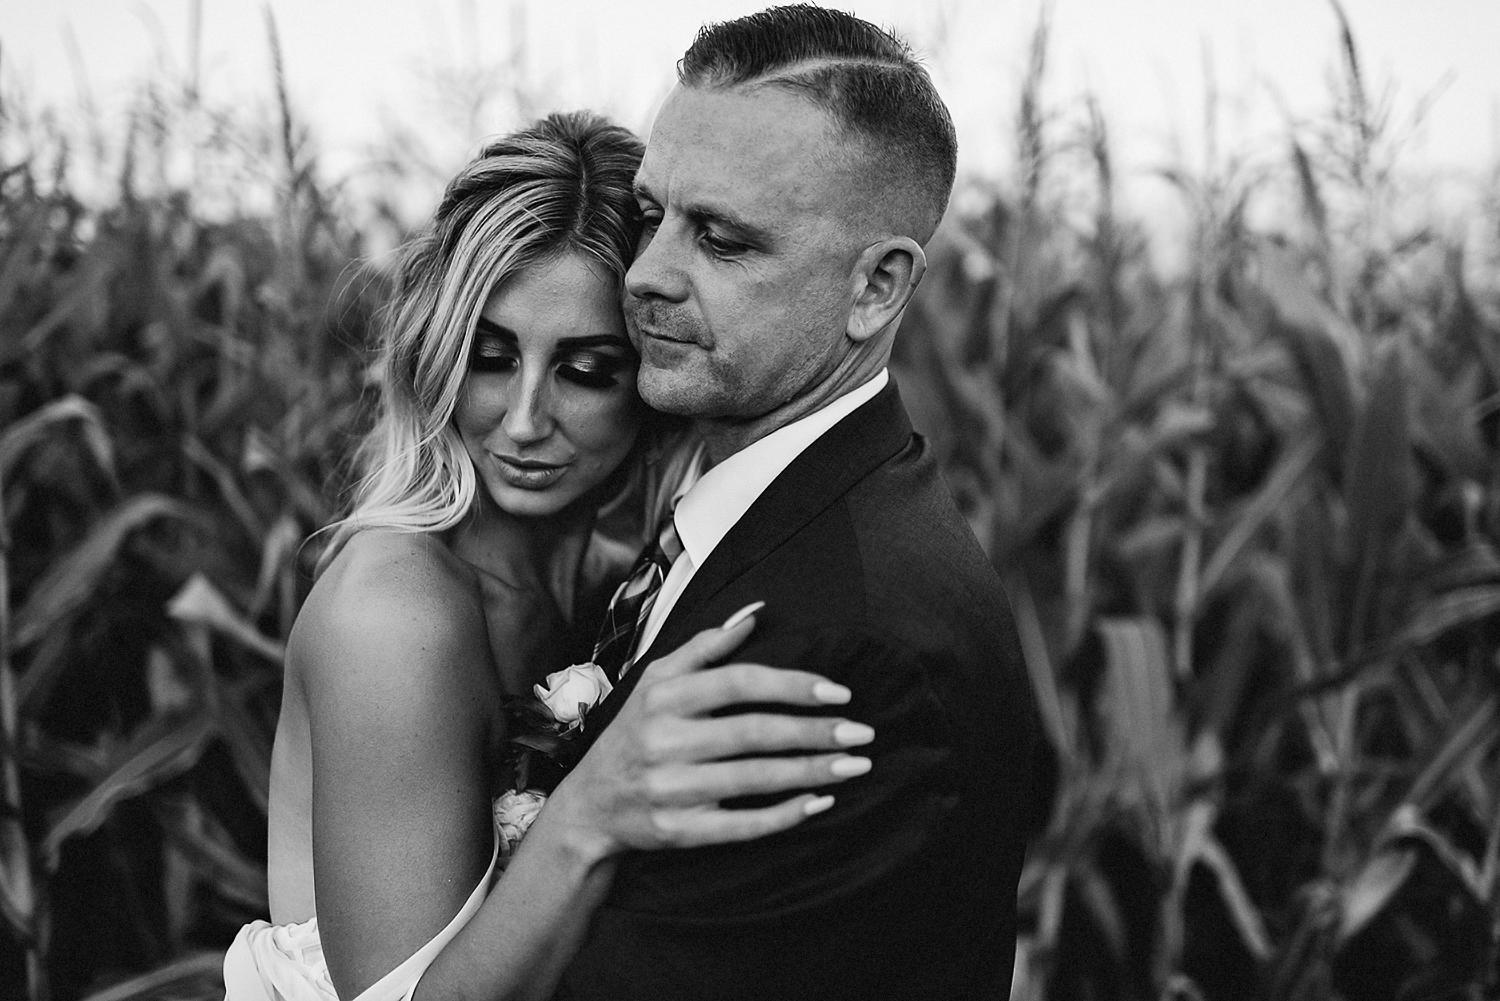 Best-Wedding-Photographers-Toronto-with-Documentary-and-photojournalistic-style-3b-Photography-Intimate-Wedding-at-Dowswell-Barn-Wedding-Photography-Bride-and-groom-intimate-wedding-couple-cornfield-pink-sunset-candid-BW.jpg